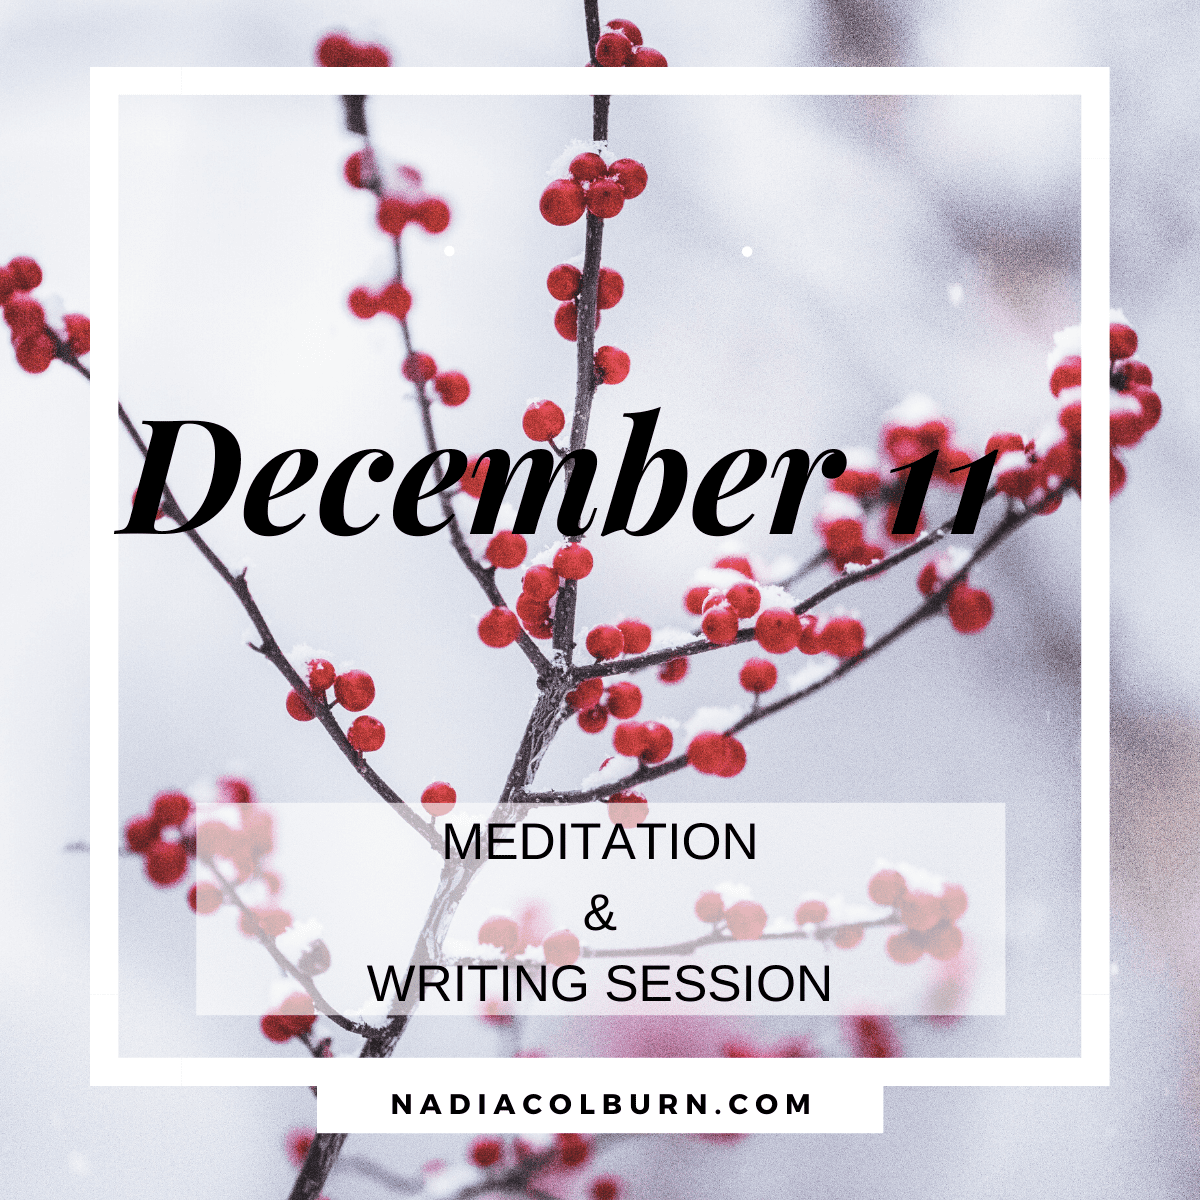 December 11th meditation and writing session 1